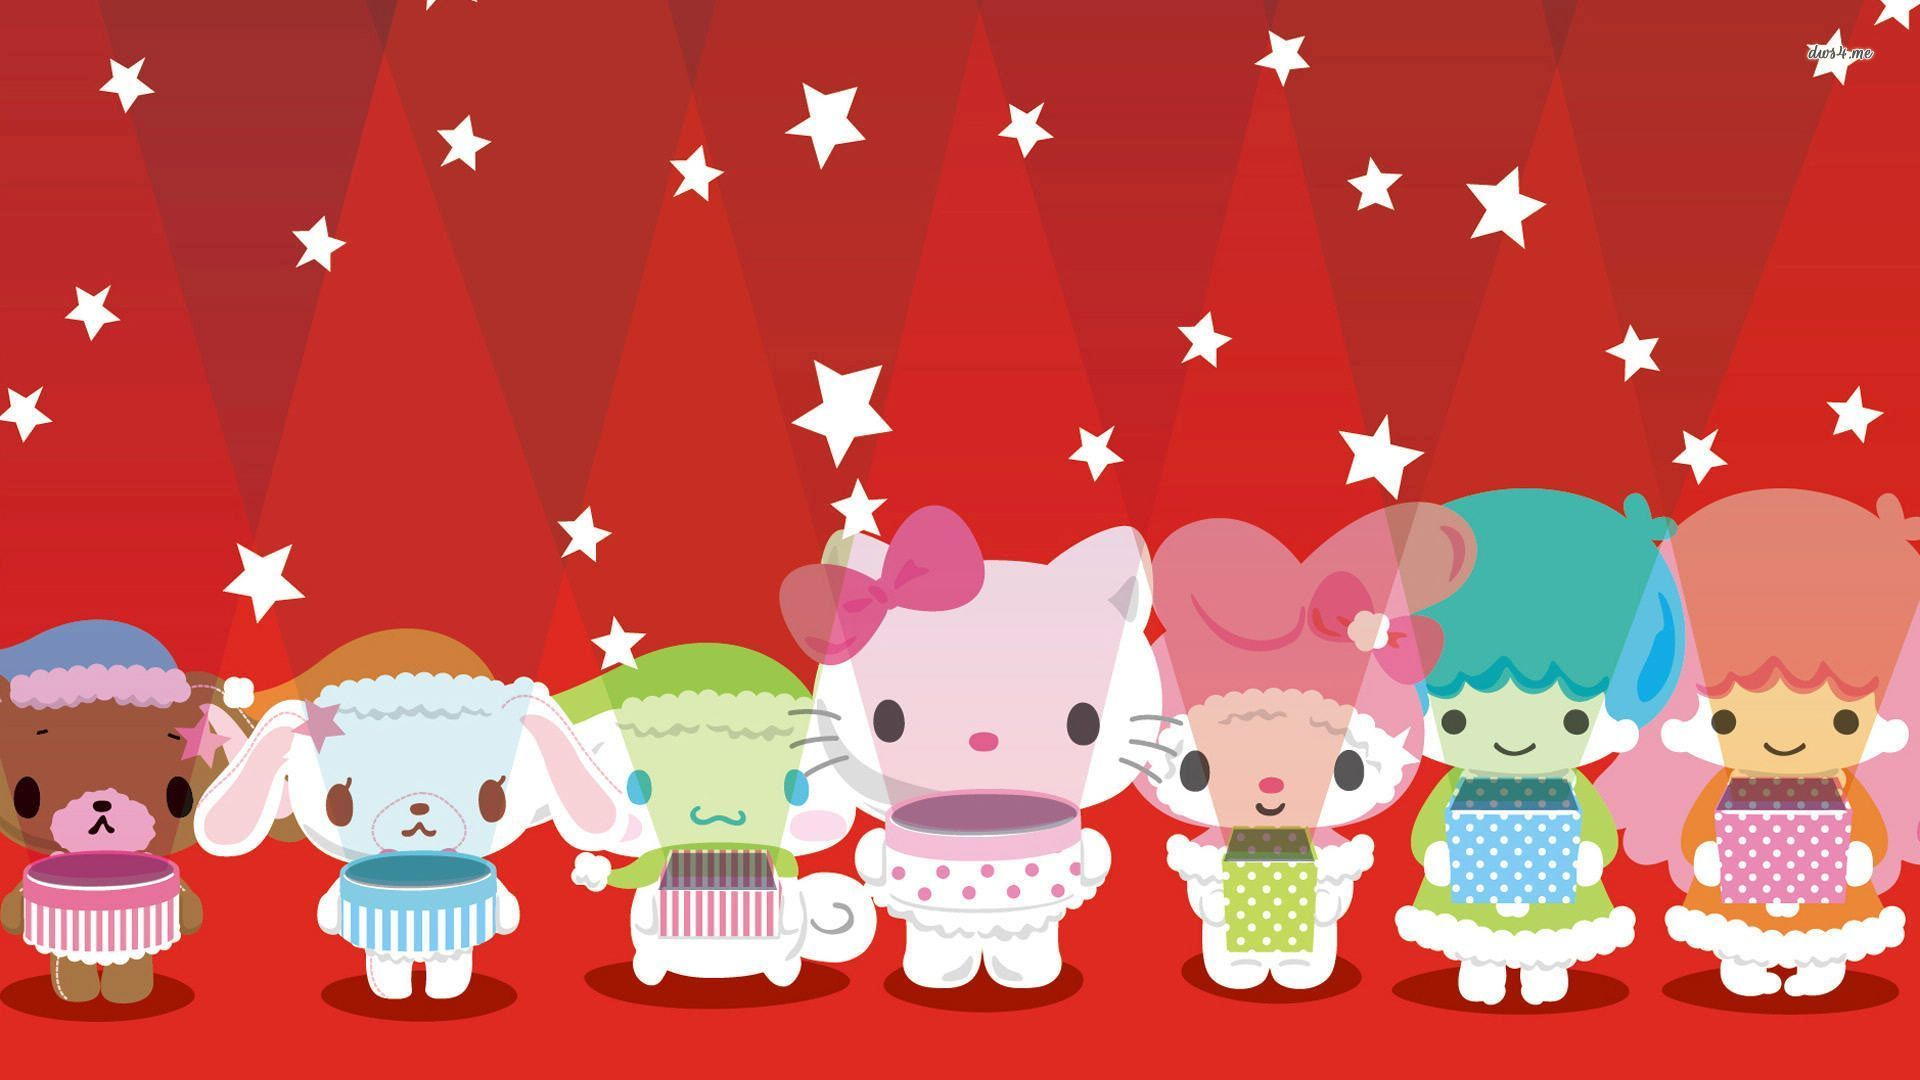 Wallpaper Iphone X Full Hd Hello Kitty Full Hd 壁纸 And 背景 1920x1080 Id 522594